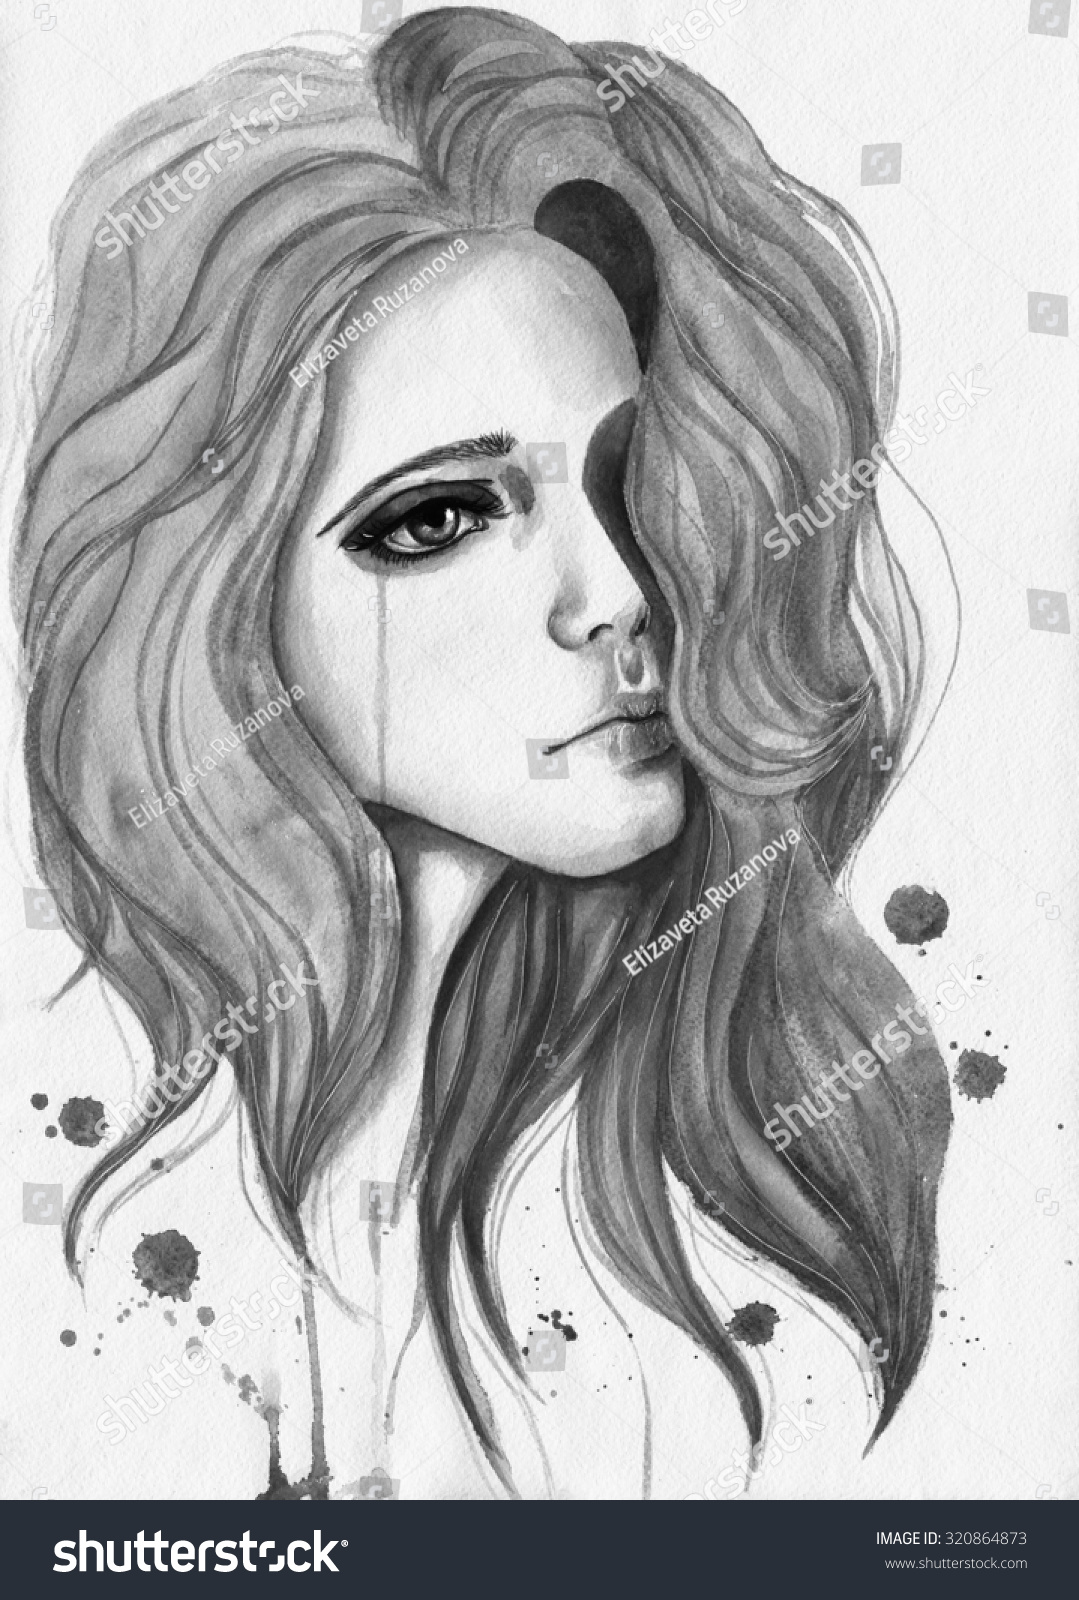 Crying girl watercolor black white illustration stock image